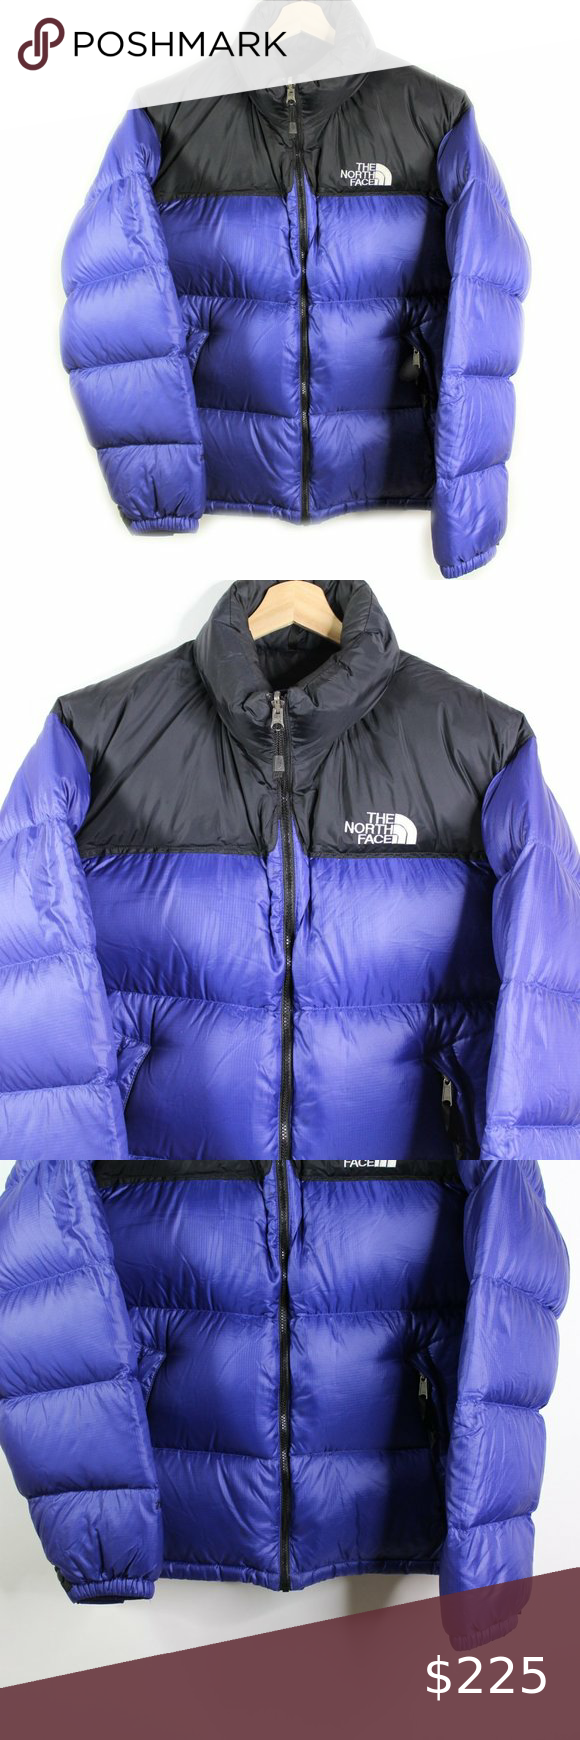 Vintage North Face 700 Goose Feather Puffer Nuptse Vintage The North Face 700 Goose Down Feather Puffer Jacket Black Pu North Face 700 Puffer North Face Jacket [ 1740 x 580 Pixel ]